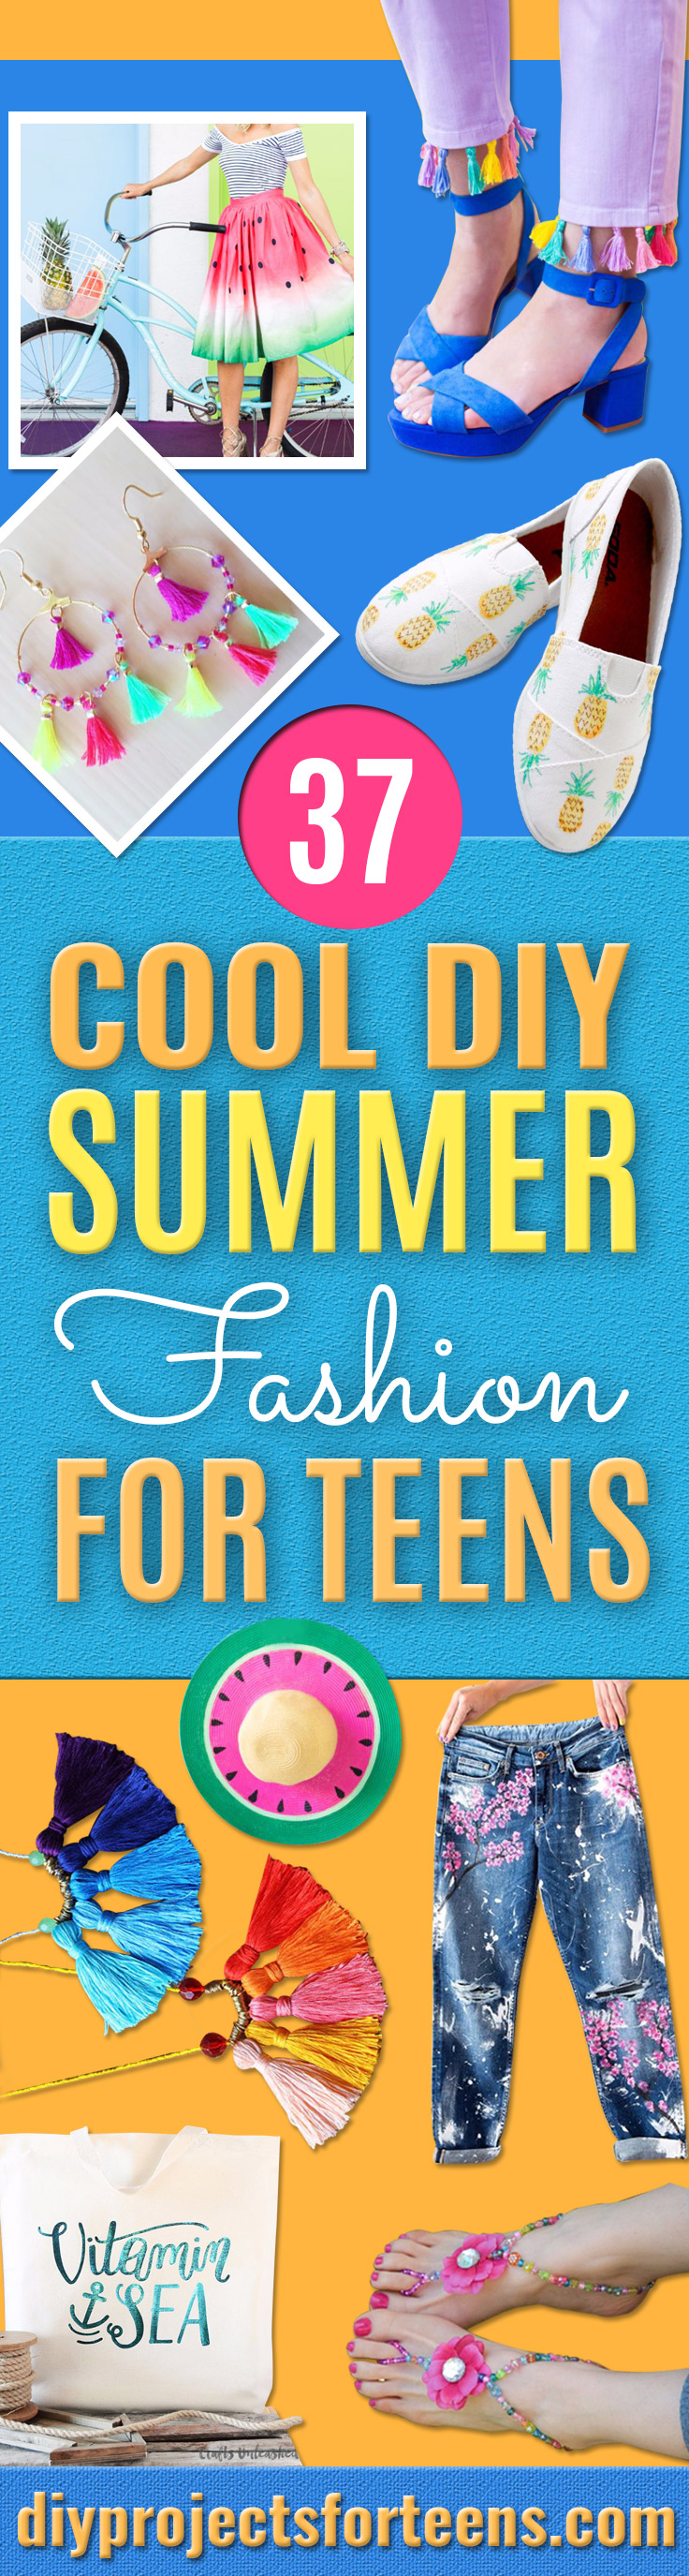 Cool Summer Fashions for Teens - Easy Sewing Projects and No Sew Crafts for Fun Fashion for Teenagers - DIY Clothes, Shoes and Accessories for Summertime Looks - Cheap and Creative Ways to Dress on A Budget http://diyprojectsforteens.com/diy-summer-fashion-teens